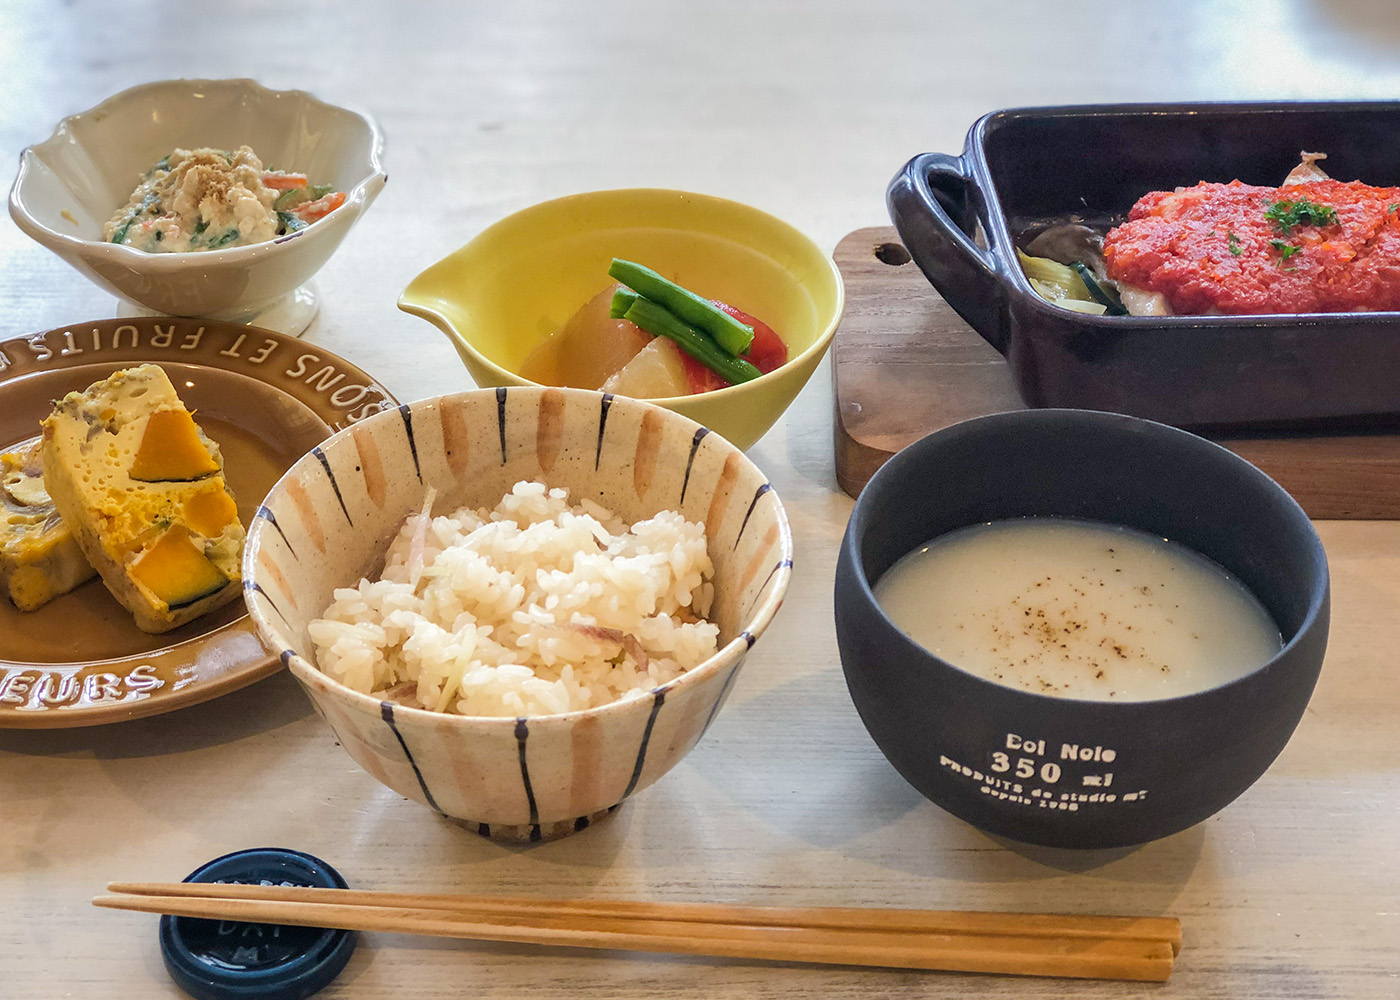 MEALSランチ